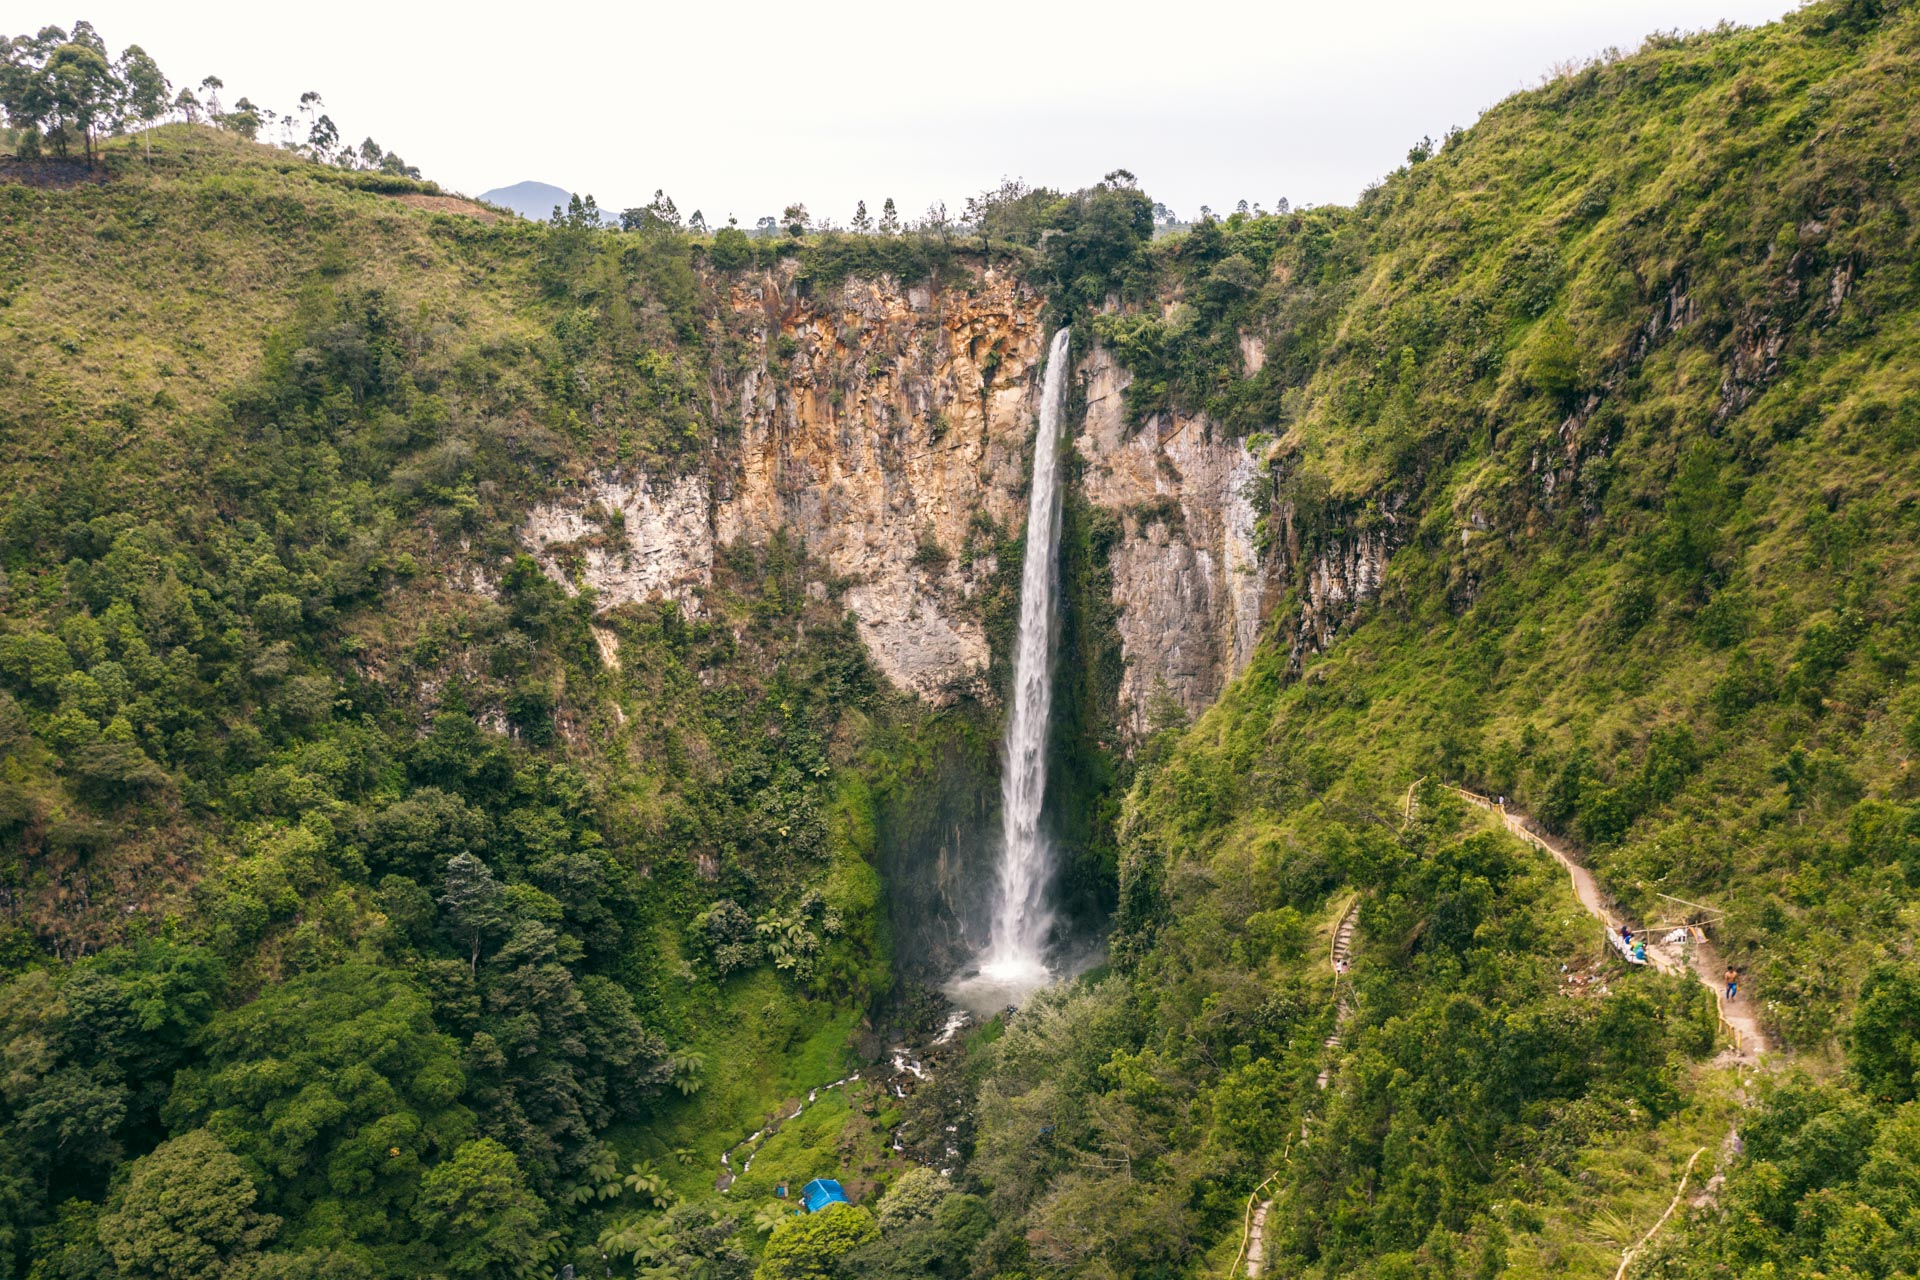 Sipiso Piso Waterfall Travel Guide: All You Need to Know